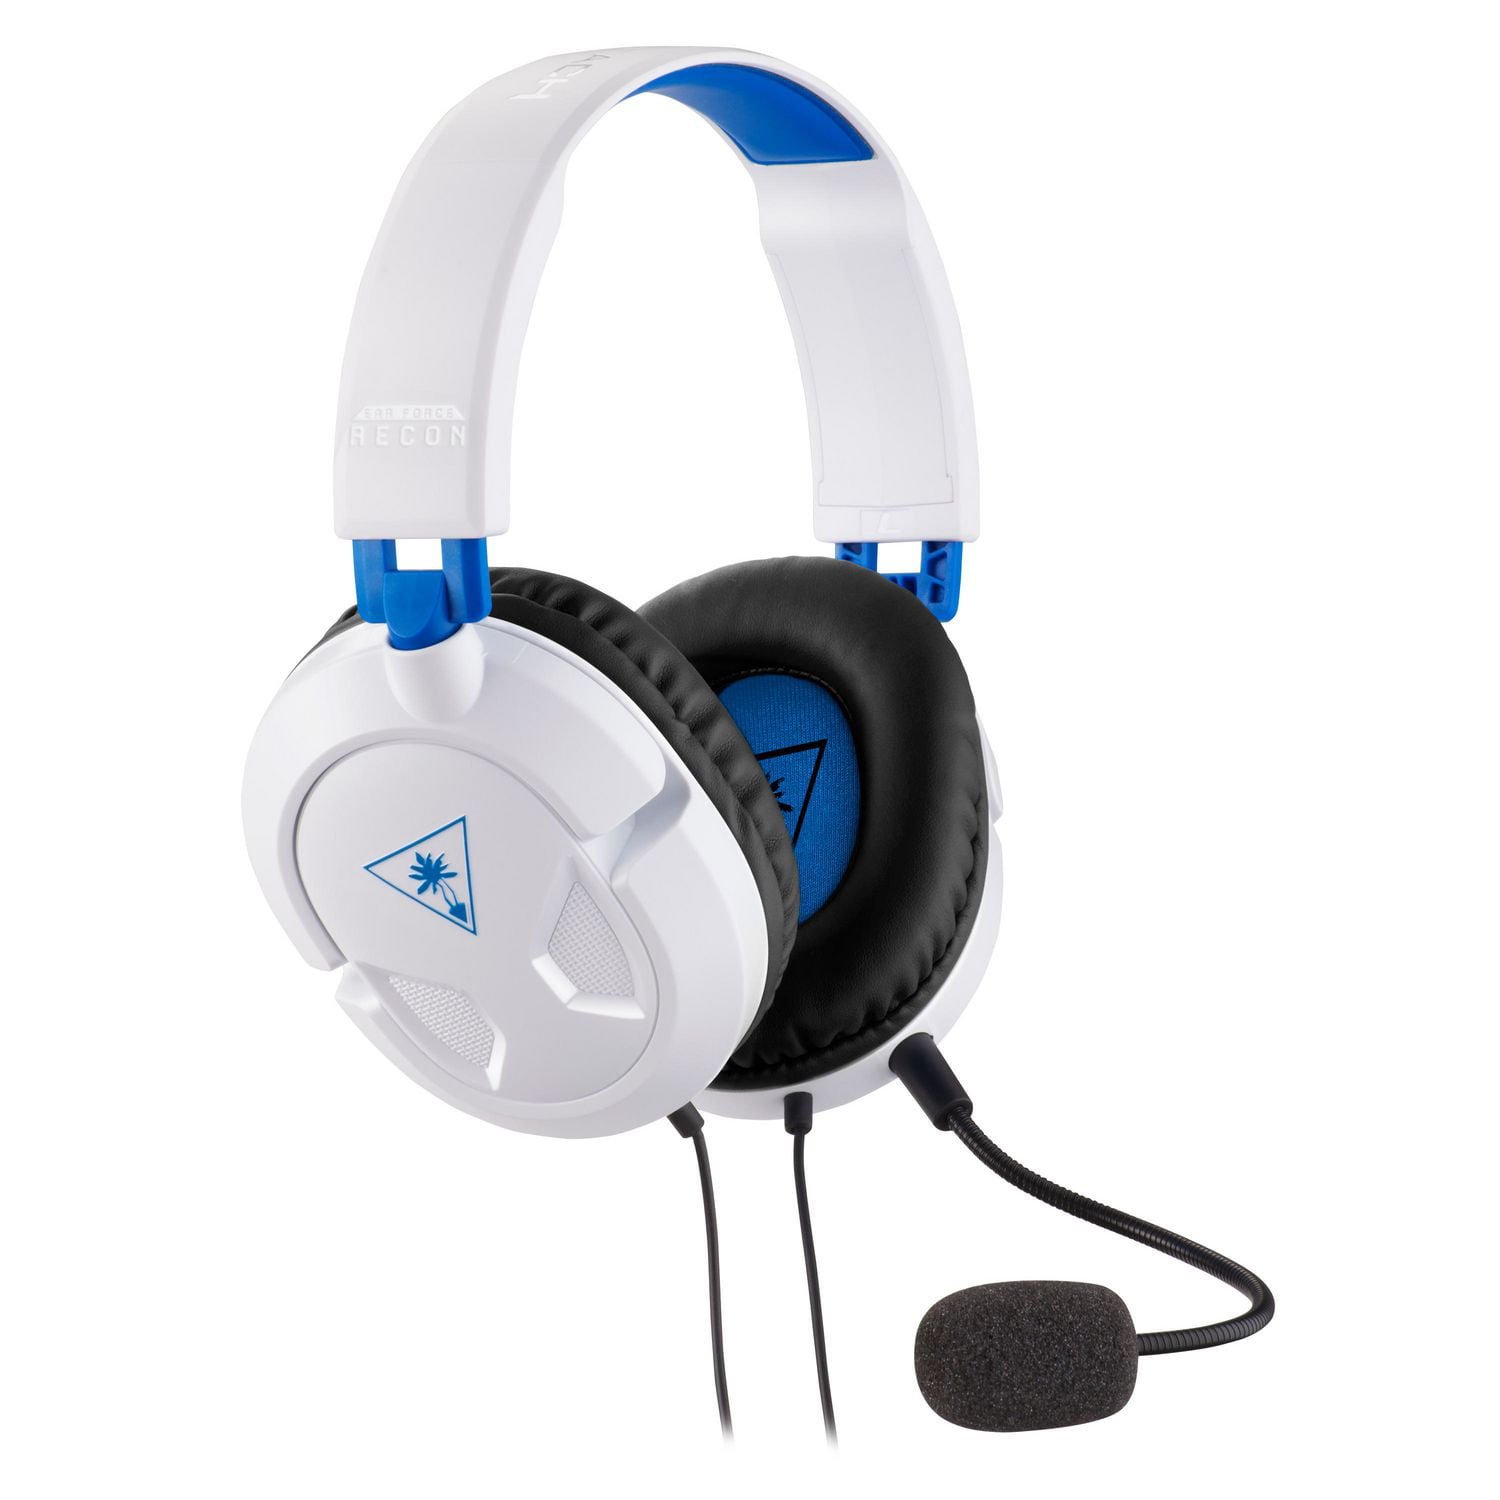 Turtle Beach Recon 50P Gaming Headset for PS4, Xbox One, PC, Mobile (White)